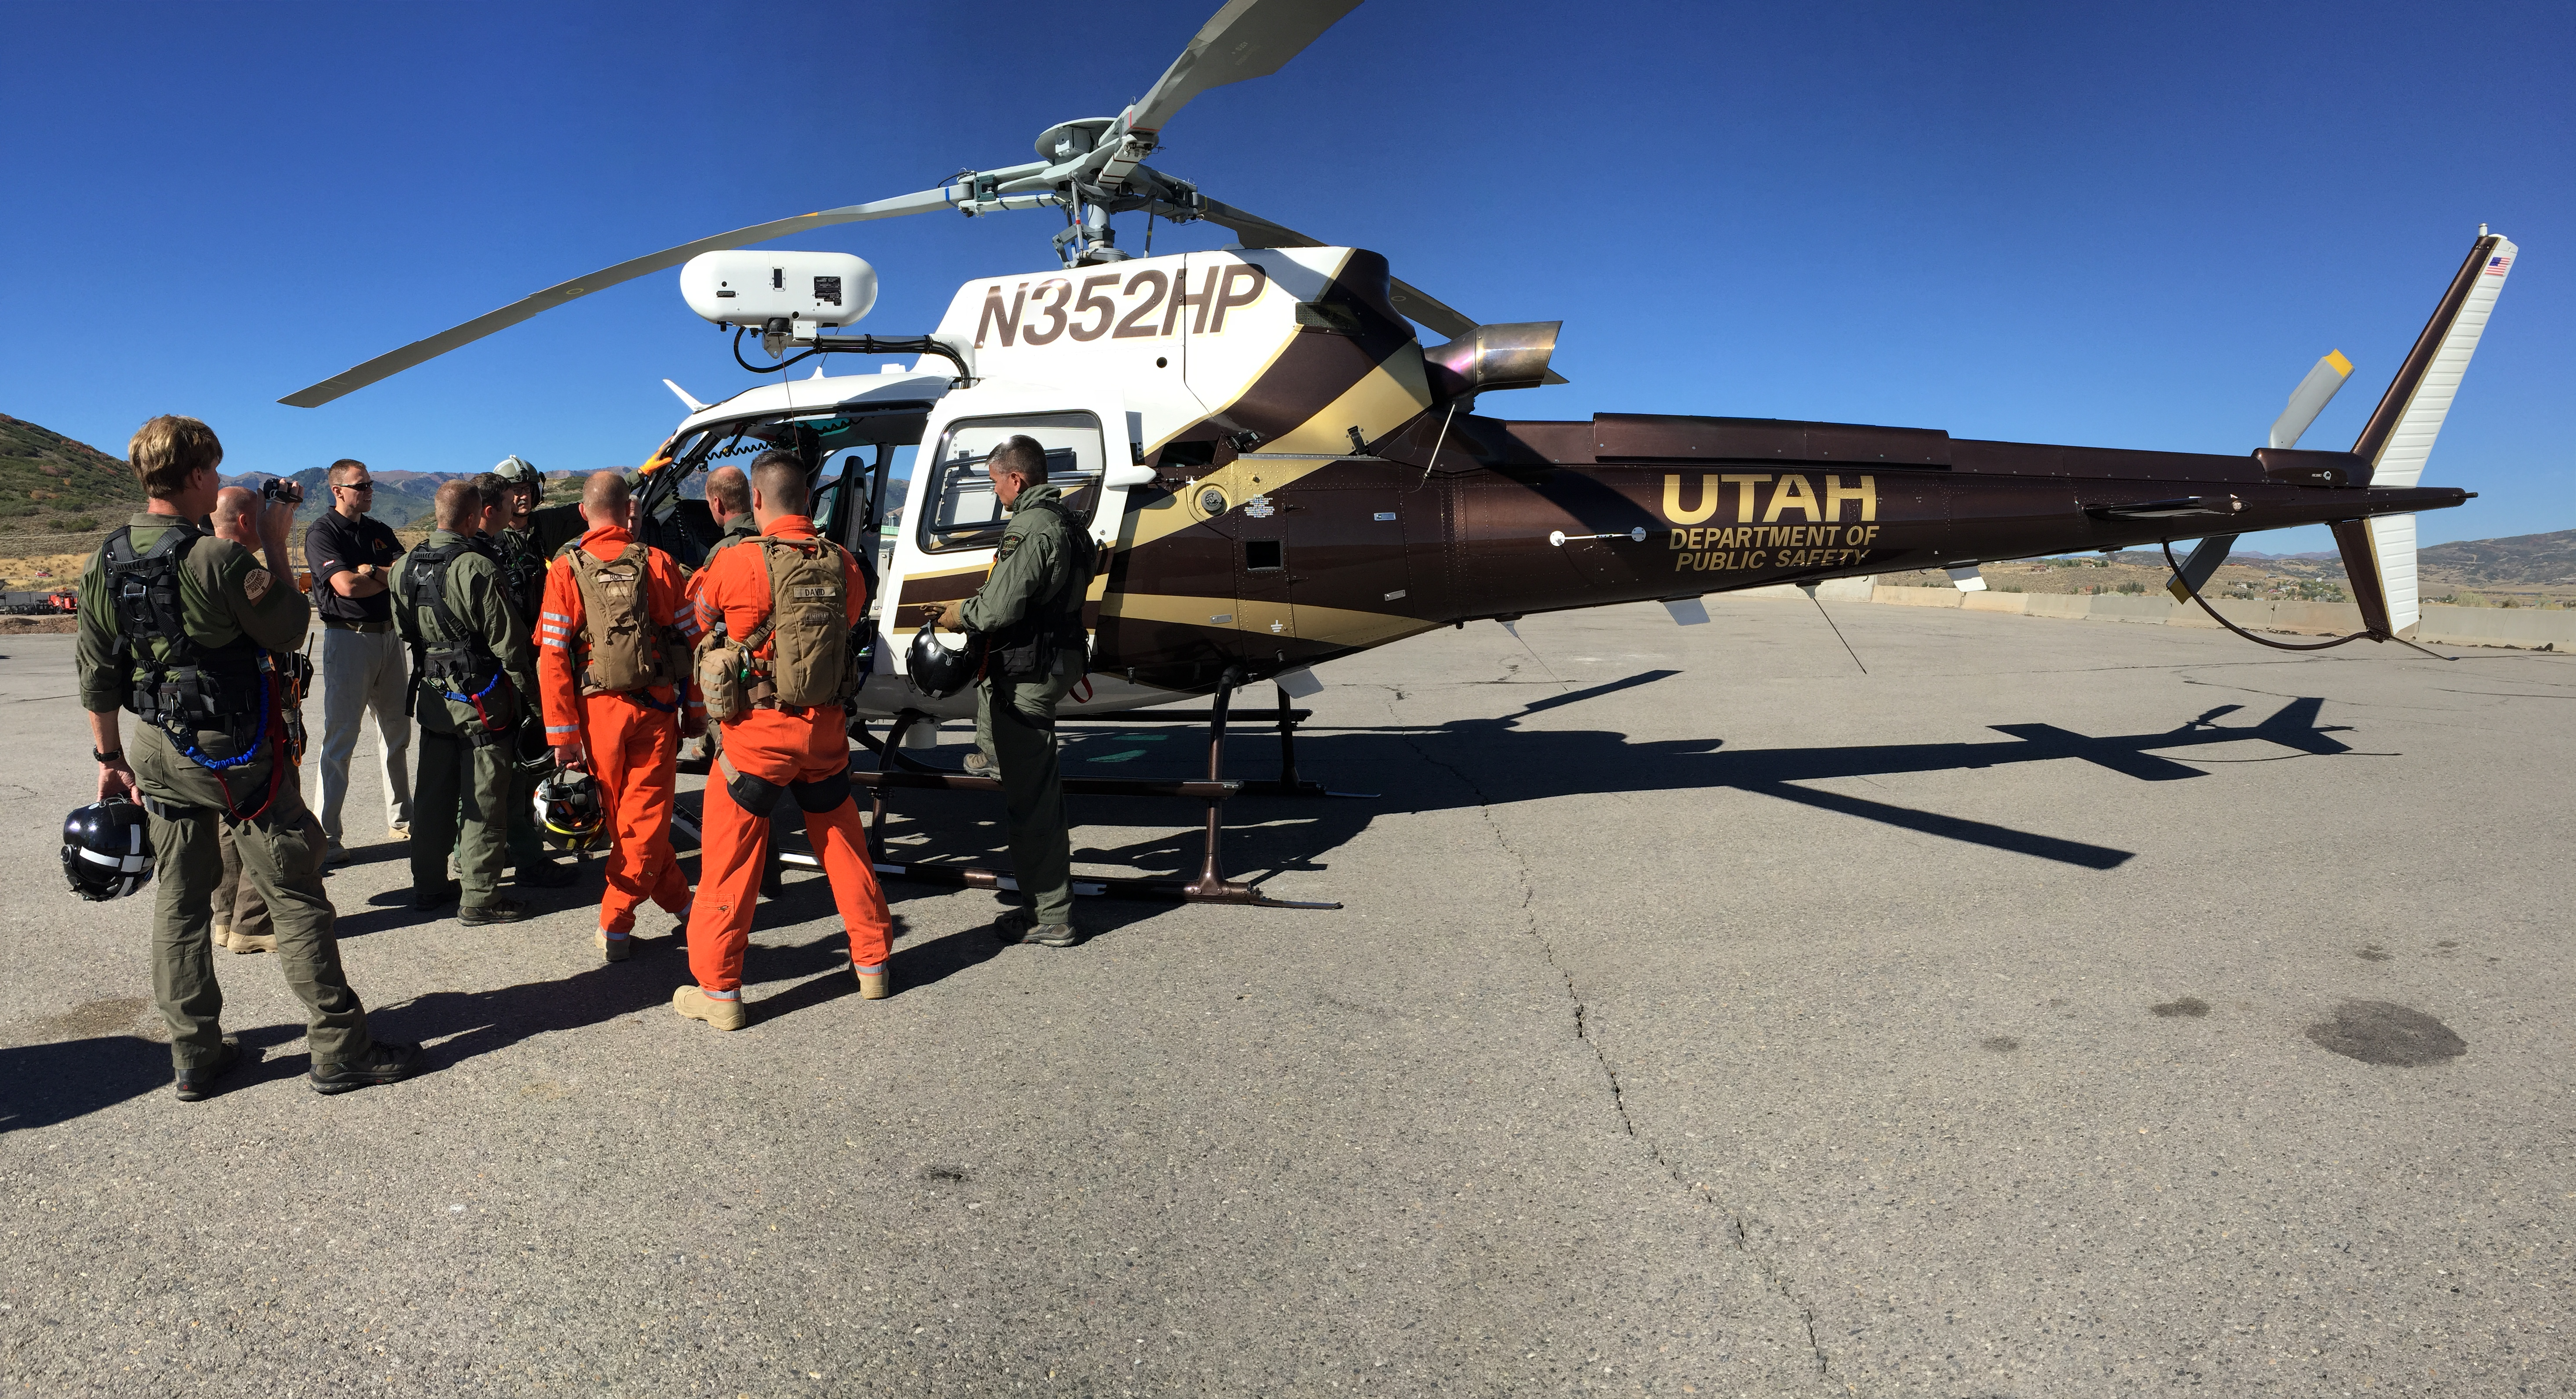 Pilots and tactical flight officers participate in hoist training with the DPS helicopter